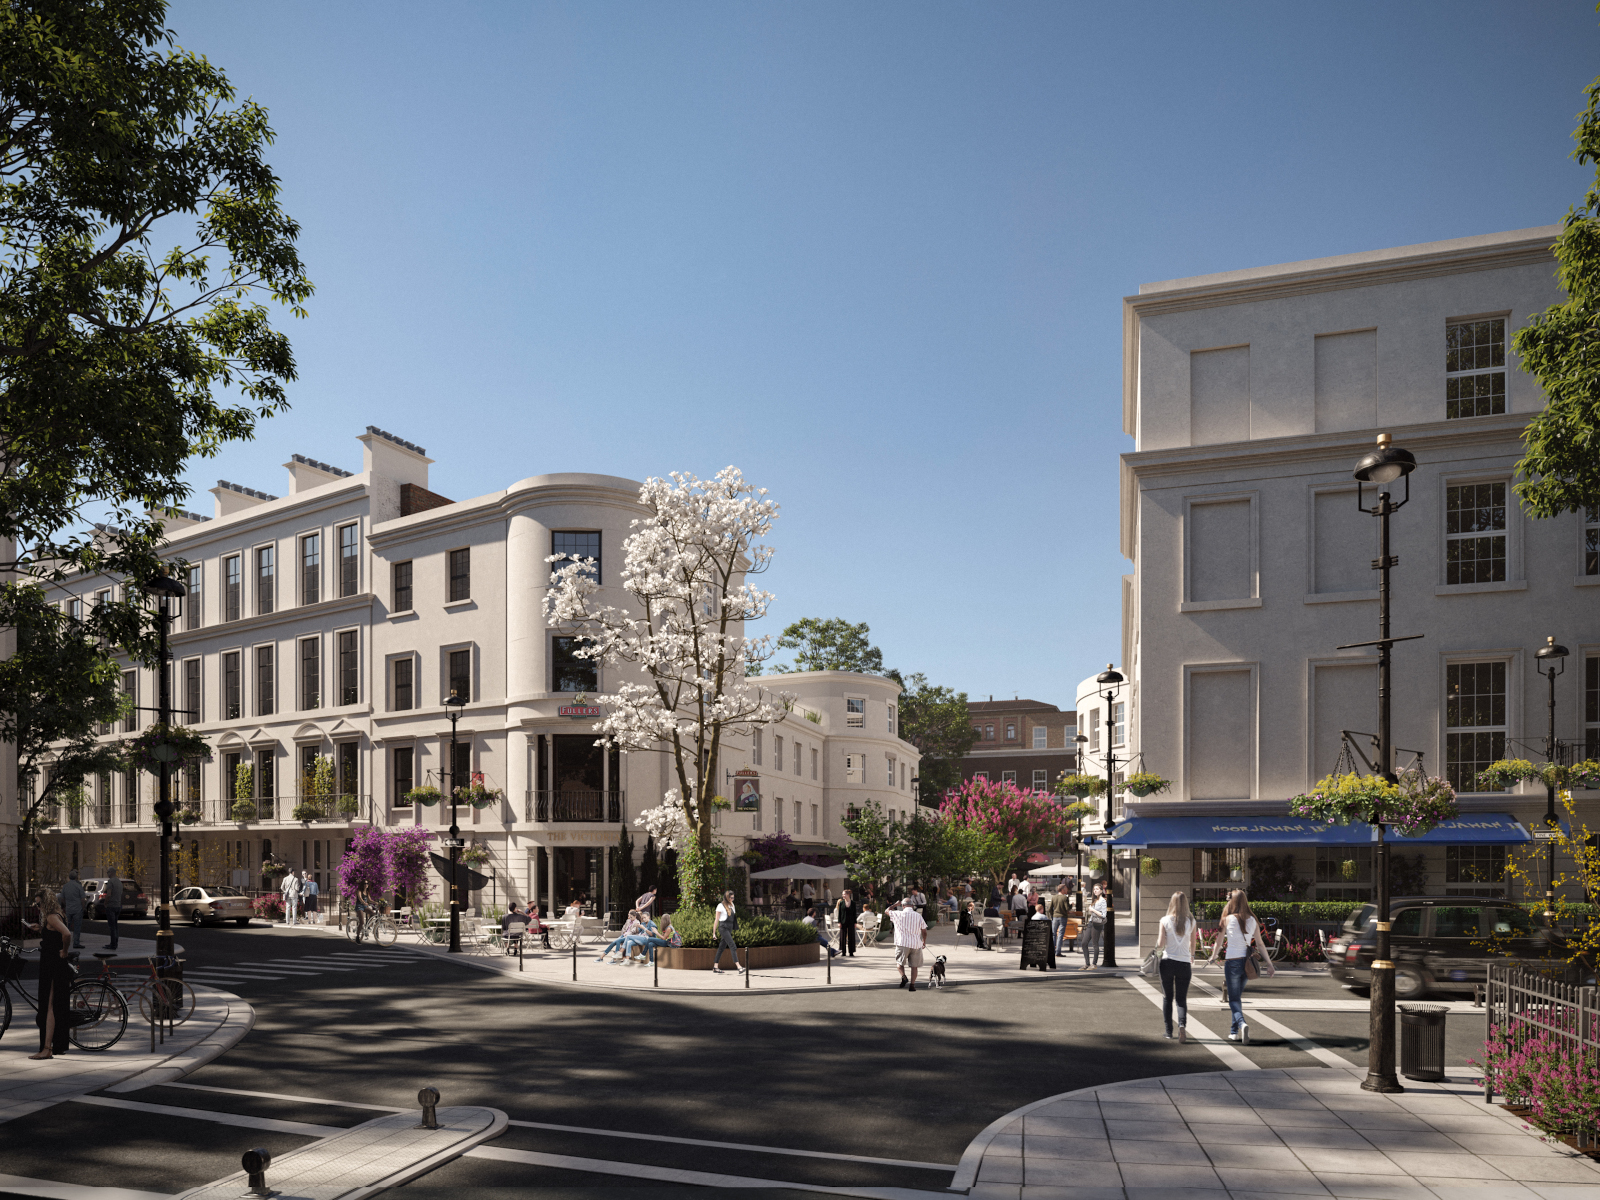 Artist's impression of how Sussex Place could look